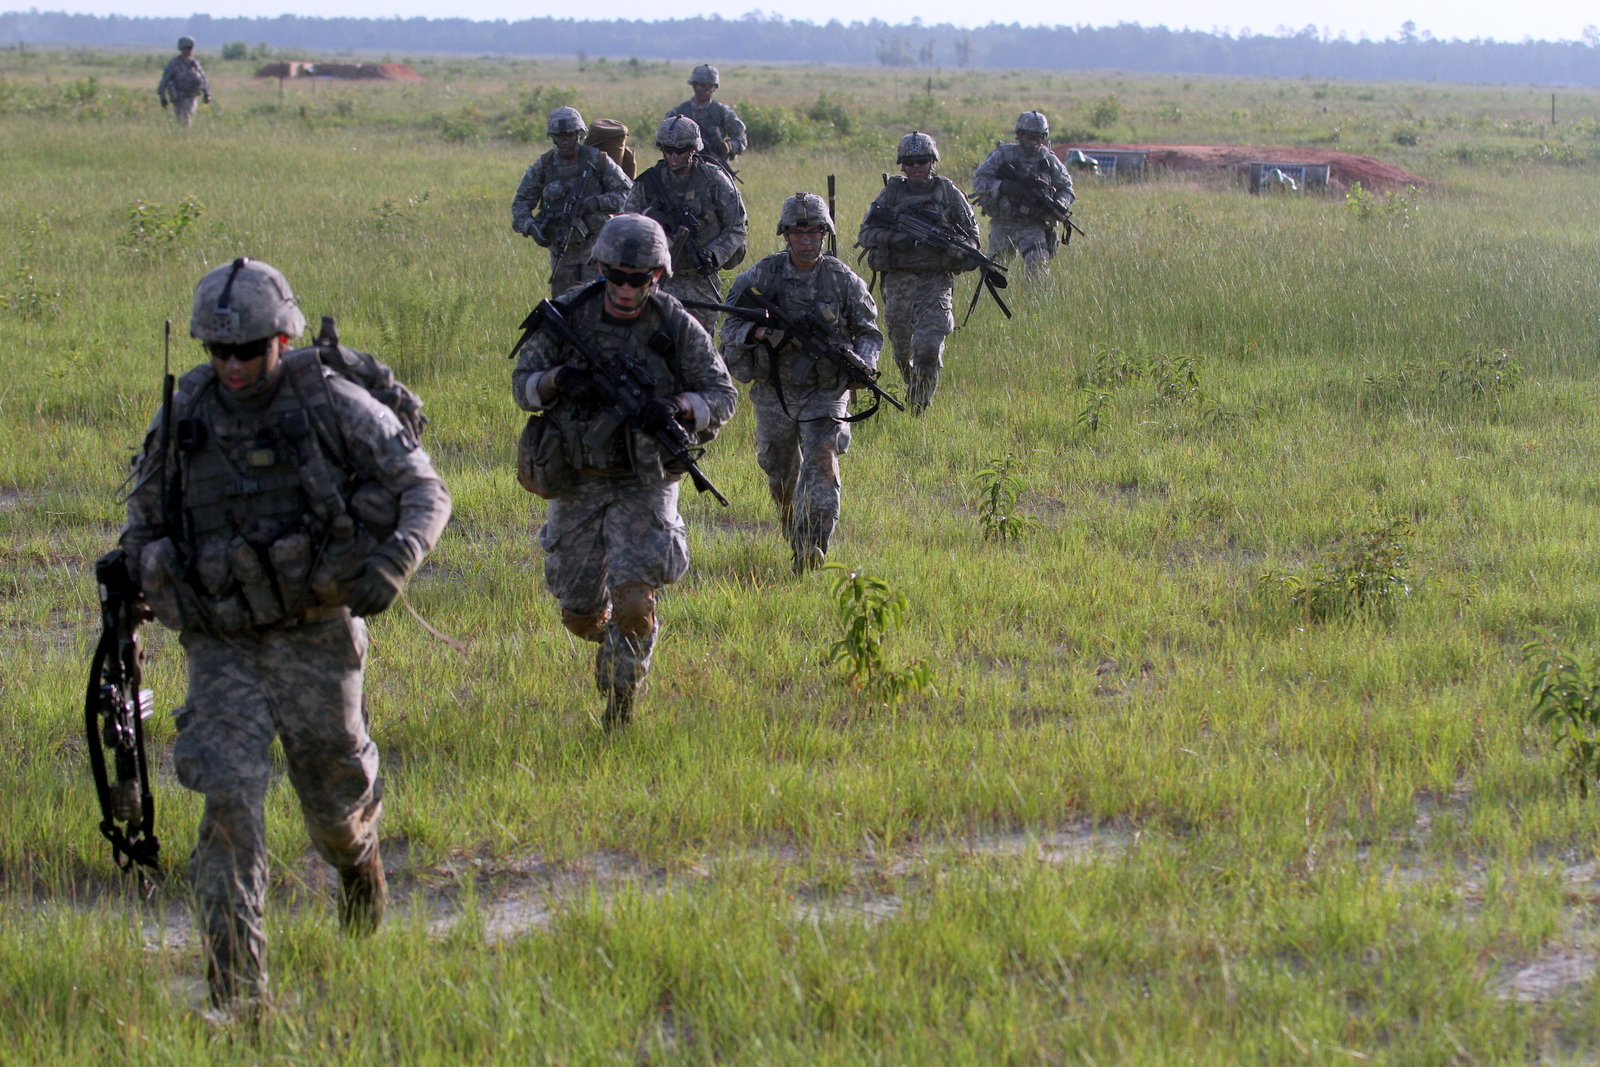 Infantrymen with 3rd Battalion, 15th Infantry Regiment, 2nd Infantry Brigade Combat Team, 3rd Infantry Division, run to an objective during a live-fire exercise on Fort Stewart, Ga., June 24, 2015. The brigade assumed the role of regionally aligned forces to U.S. Africa Command Oct. 1. (U.S. Army Photo by Sgt. Joshua Laidacker, 2nd IBCT, 3rd ID Public Affairs)